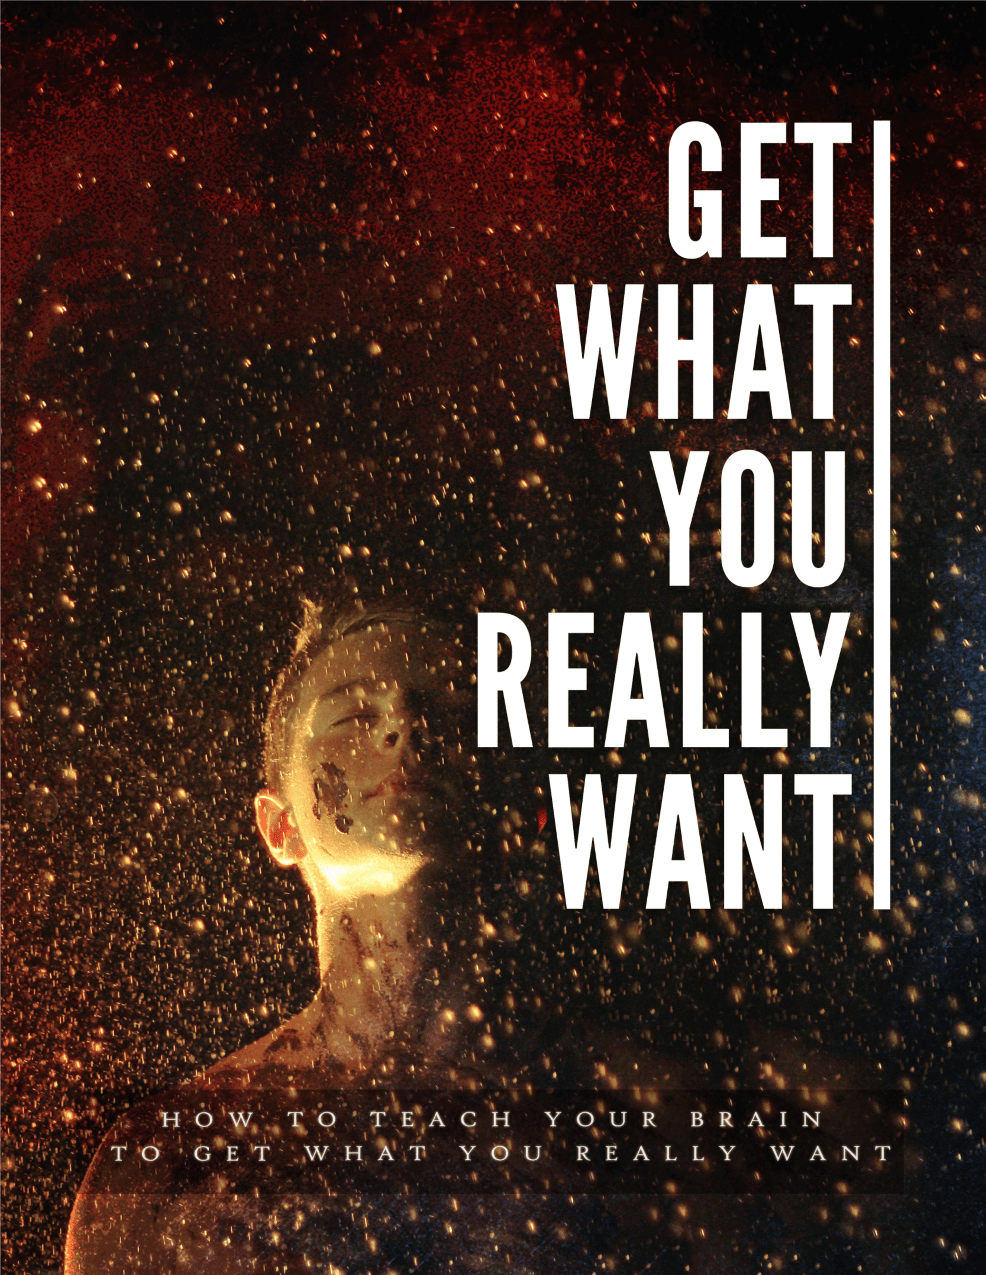 Get What You Really Want